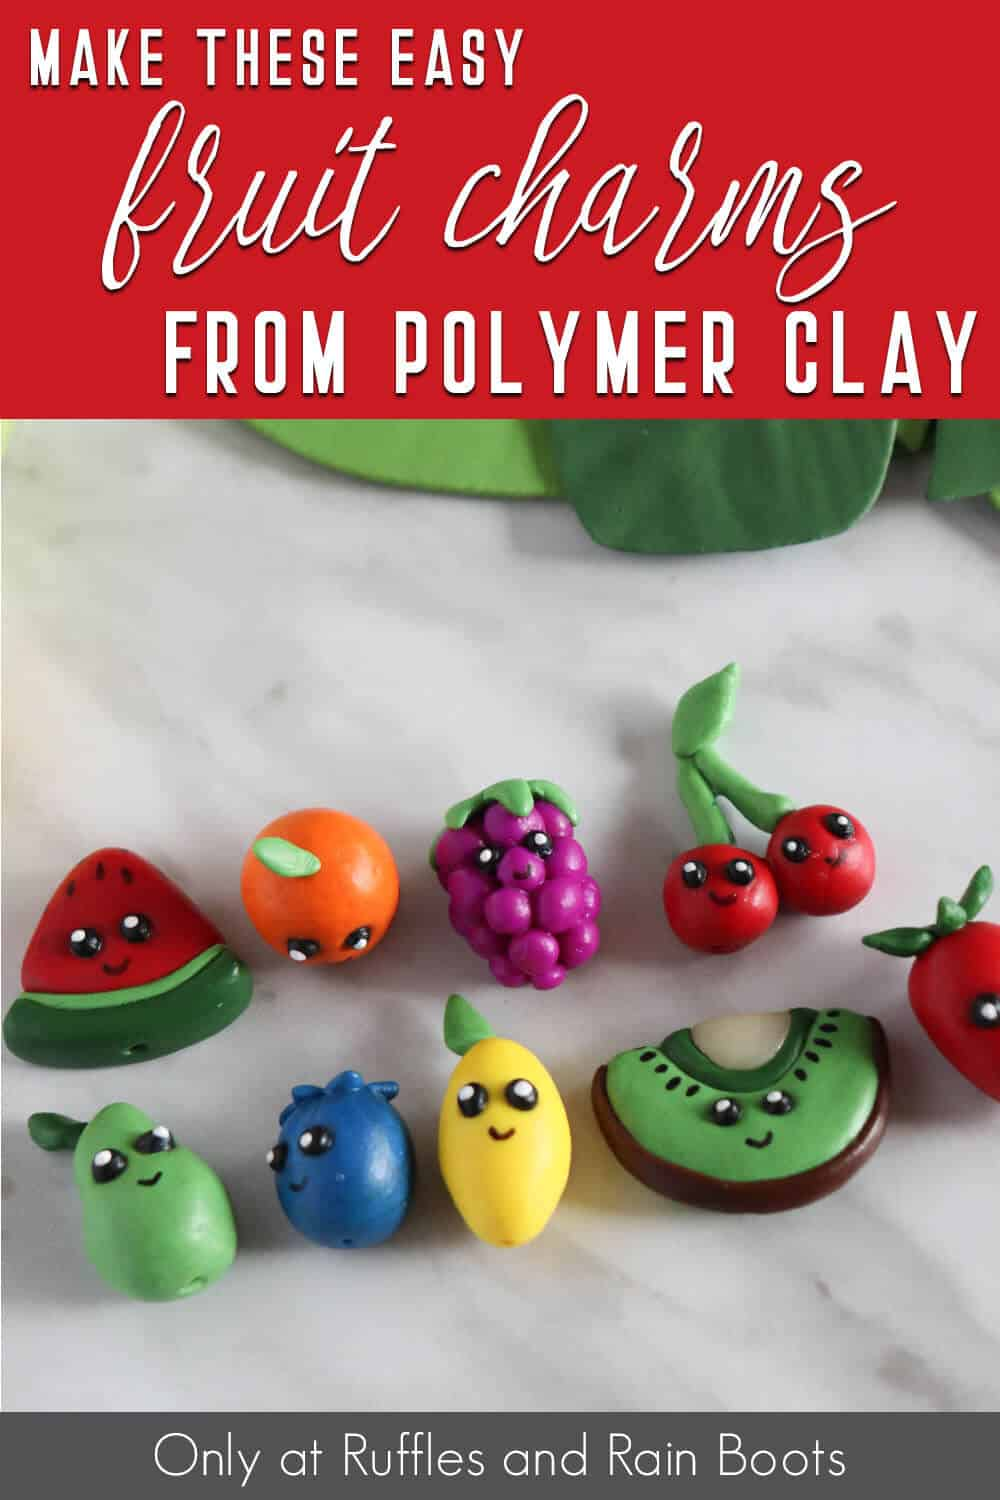 polymer clay fruit charms for bracelet with text which reads make these easy fruit charms from polymer clay